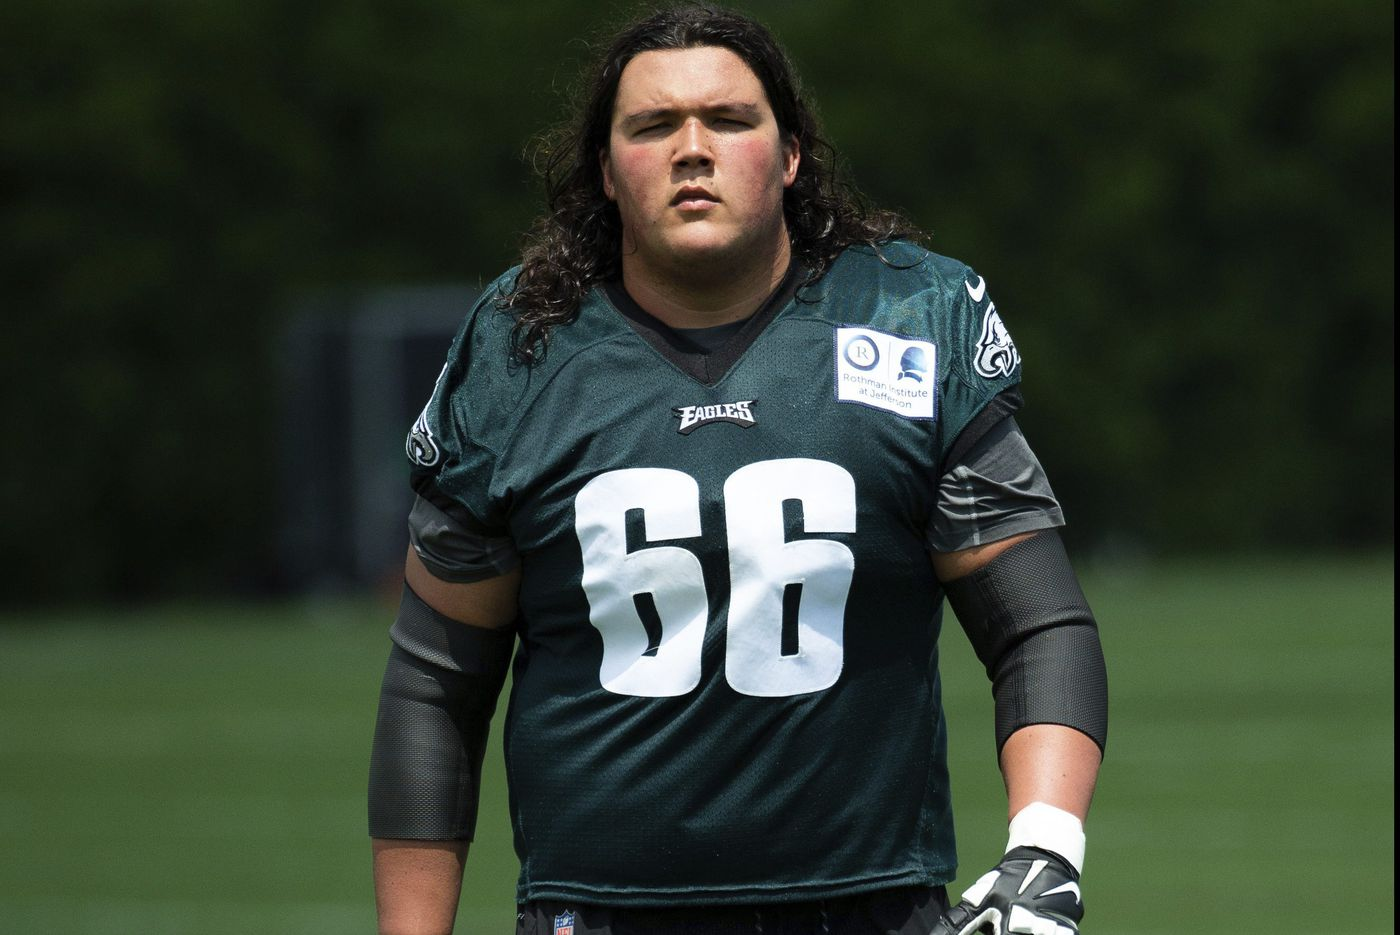 From Northwestern to Slippery Rock to Eagles, the journey of center Ian Park | Bob Ford